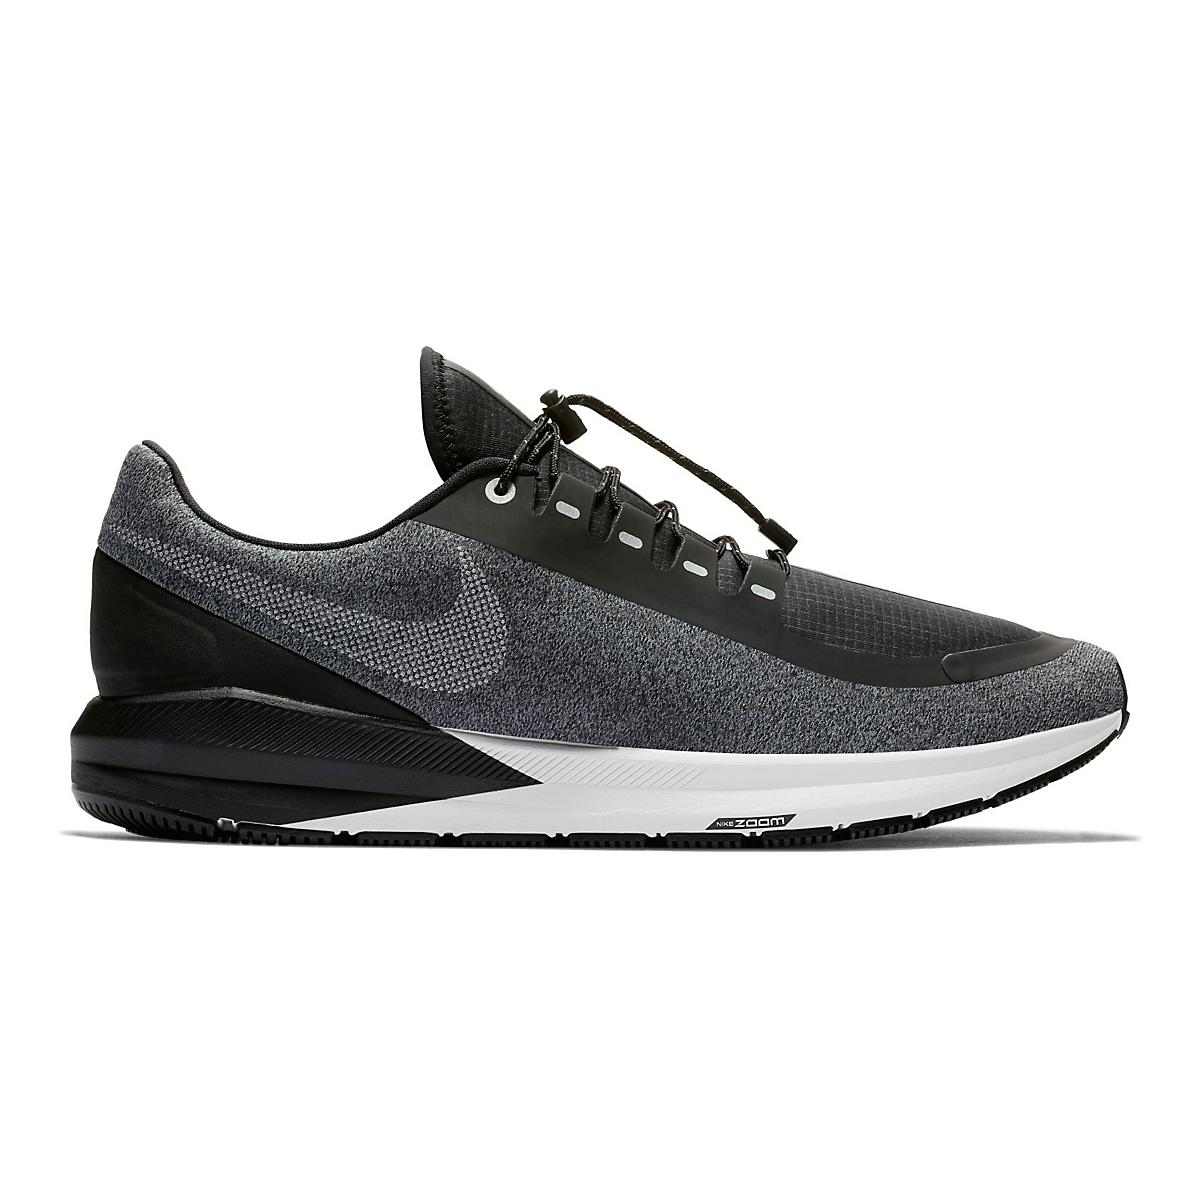 hot sale online 0fee2 30692 Mens Nike Air Zoom Structure 22 Shield Running Shoe at Road Runner Sports